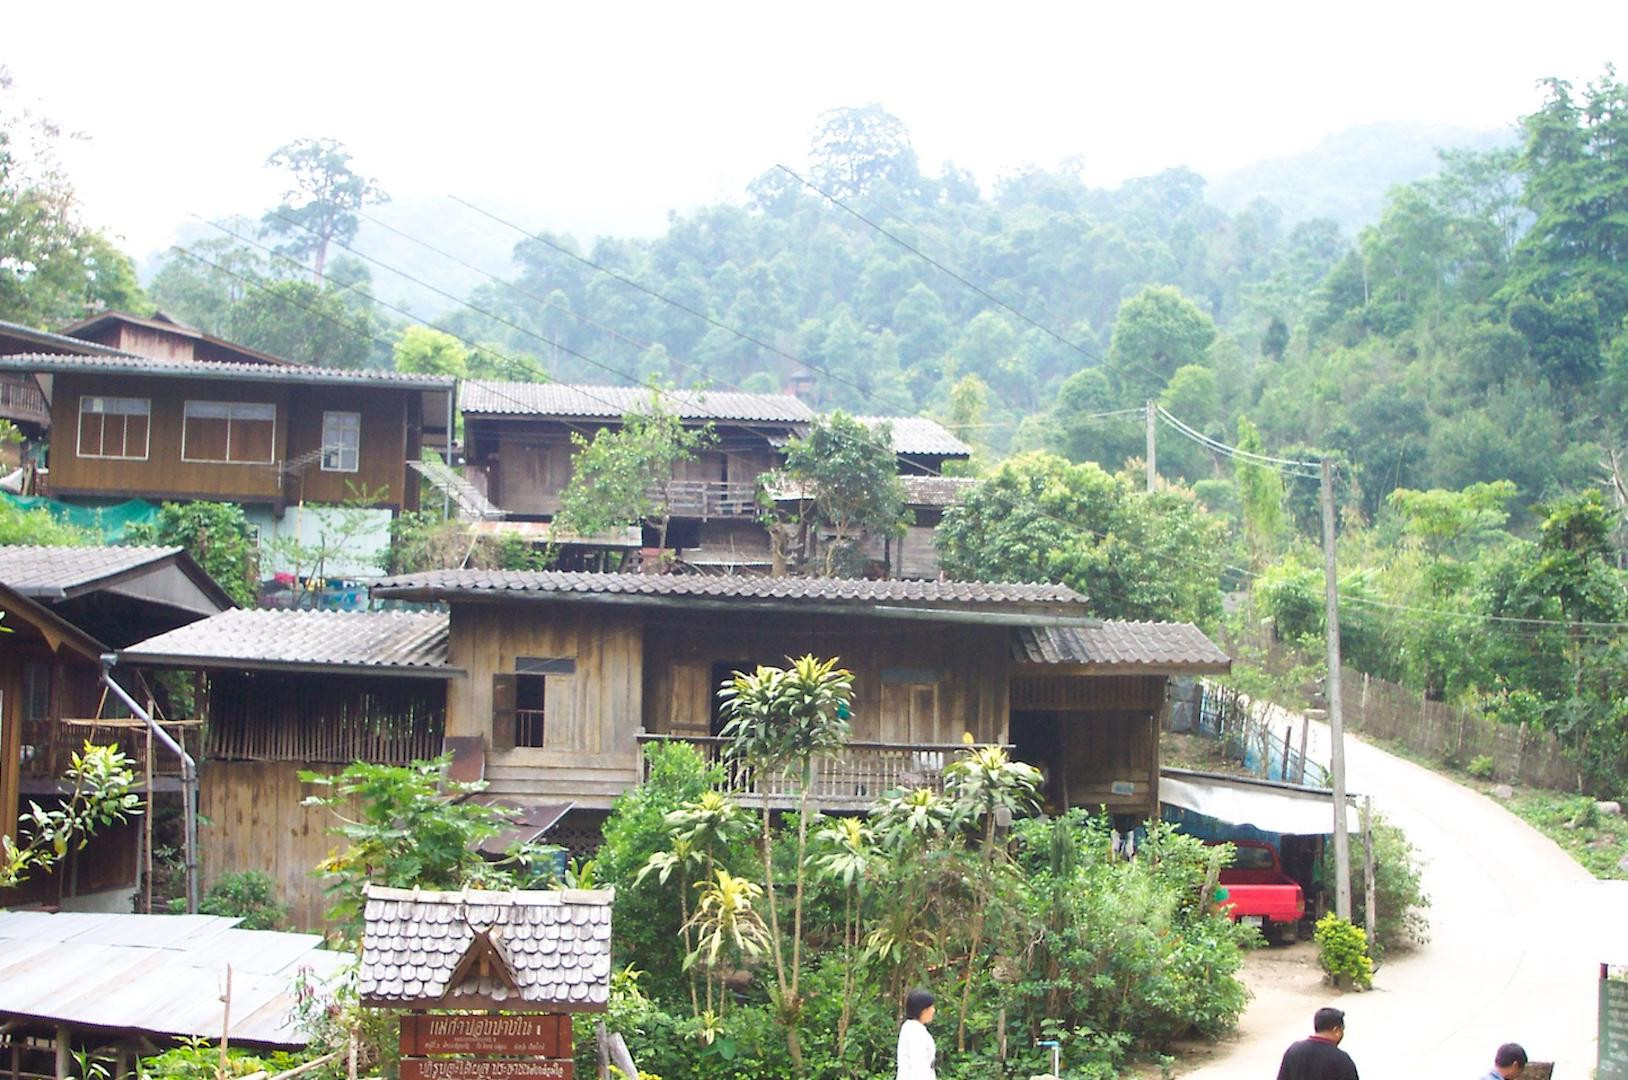 Take in the beautiful view of the village